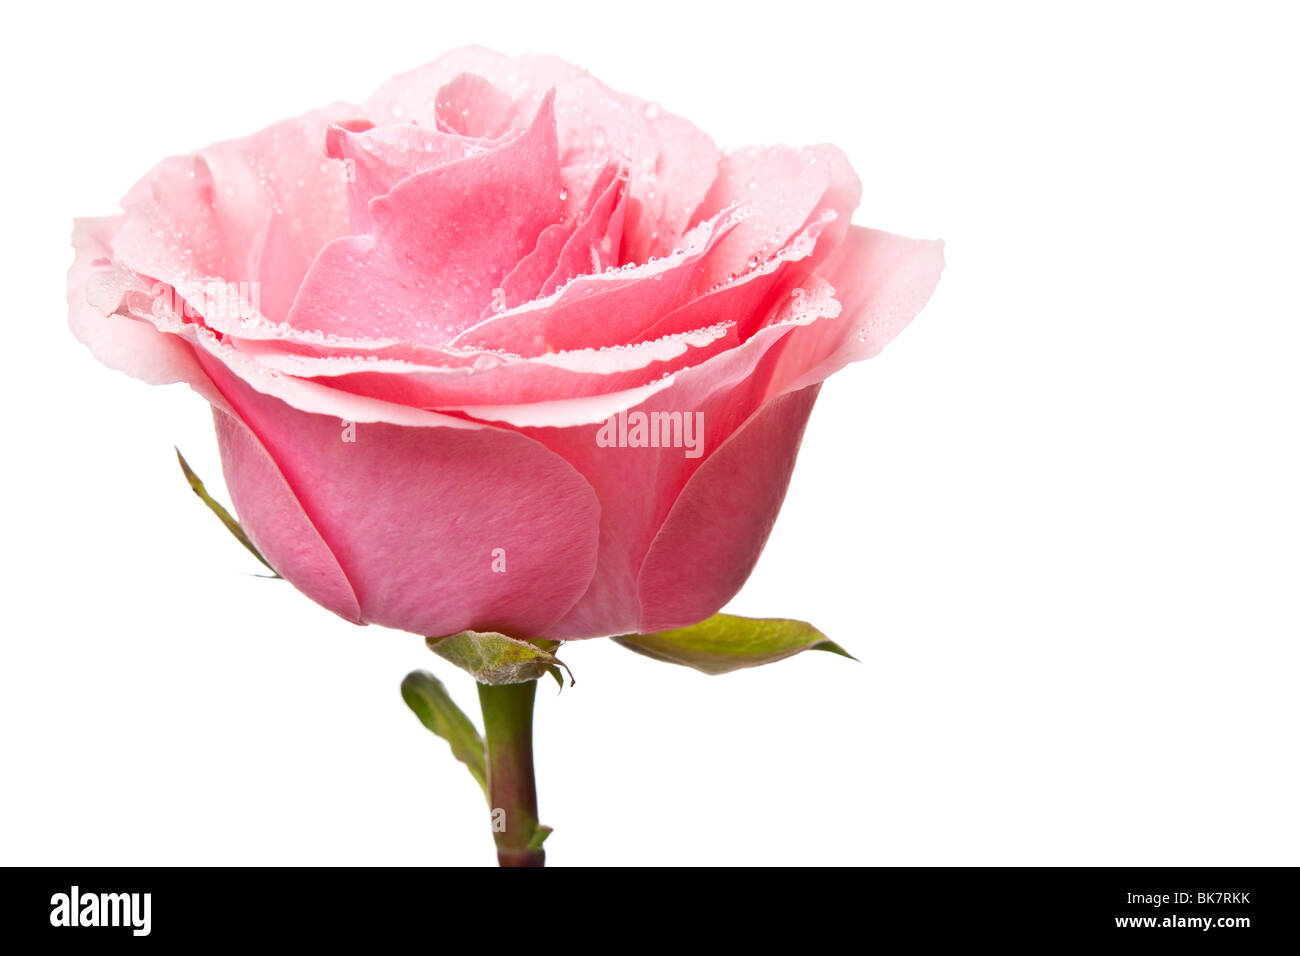 pink rose isolated on a white background - Stock Image